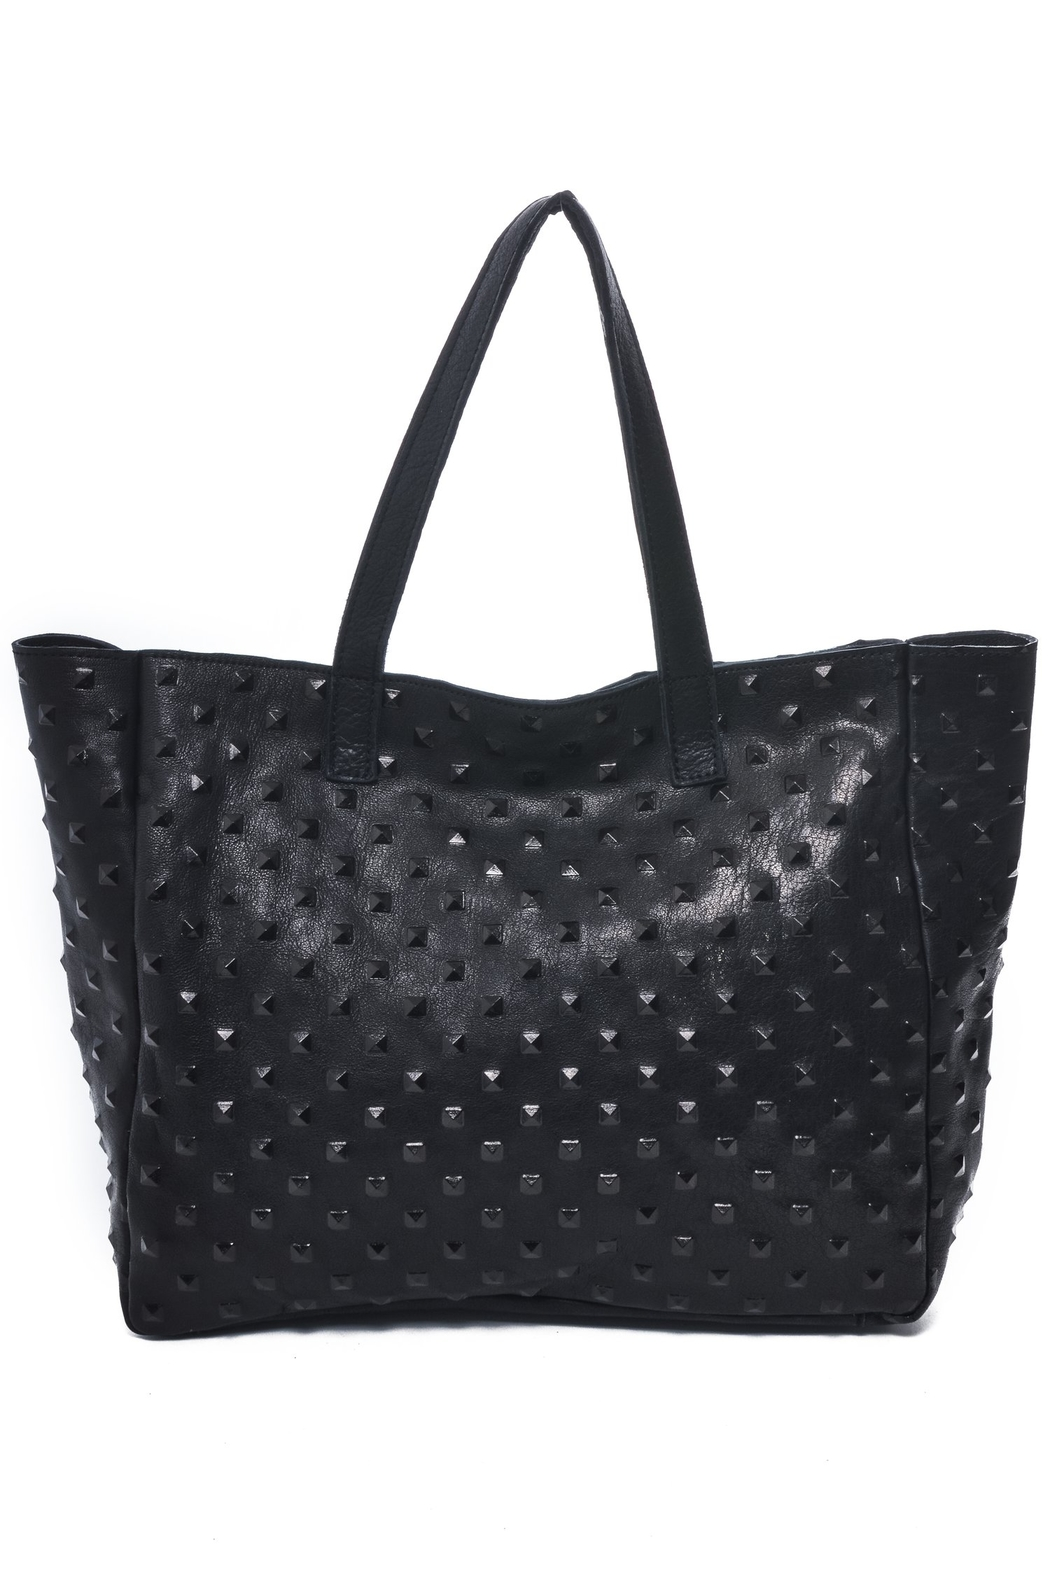 Carla Mancini Amber Studded Tote - Front Cropped Image